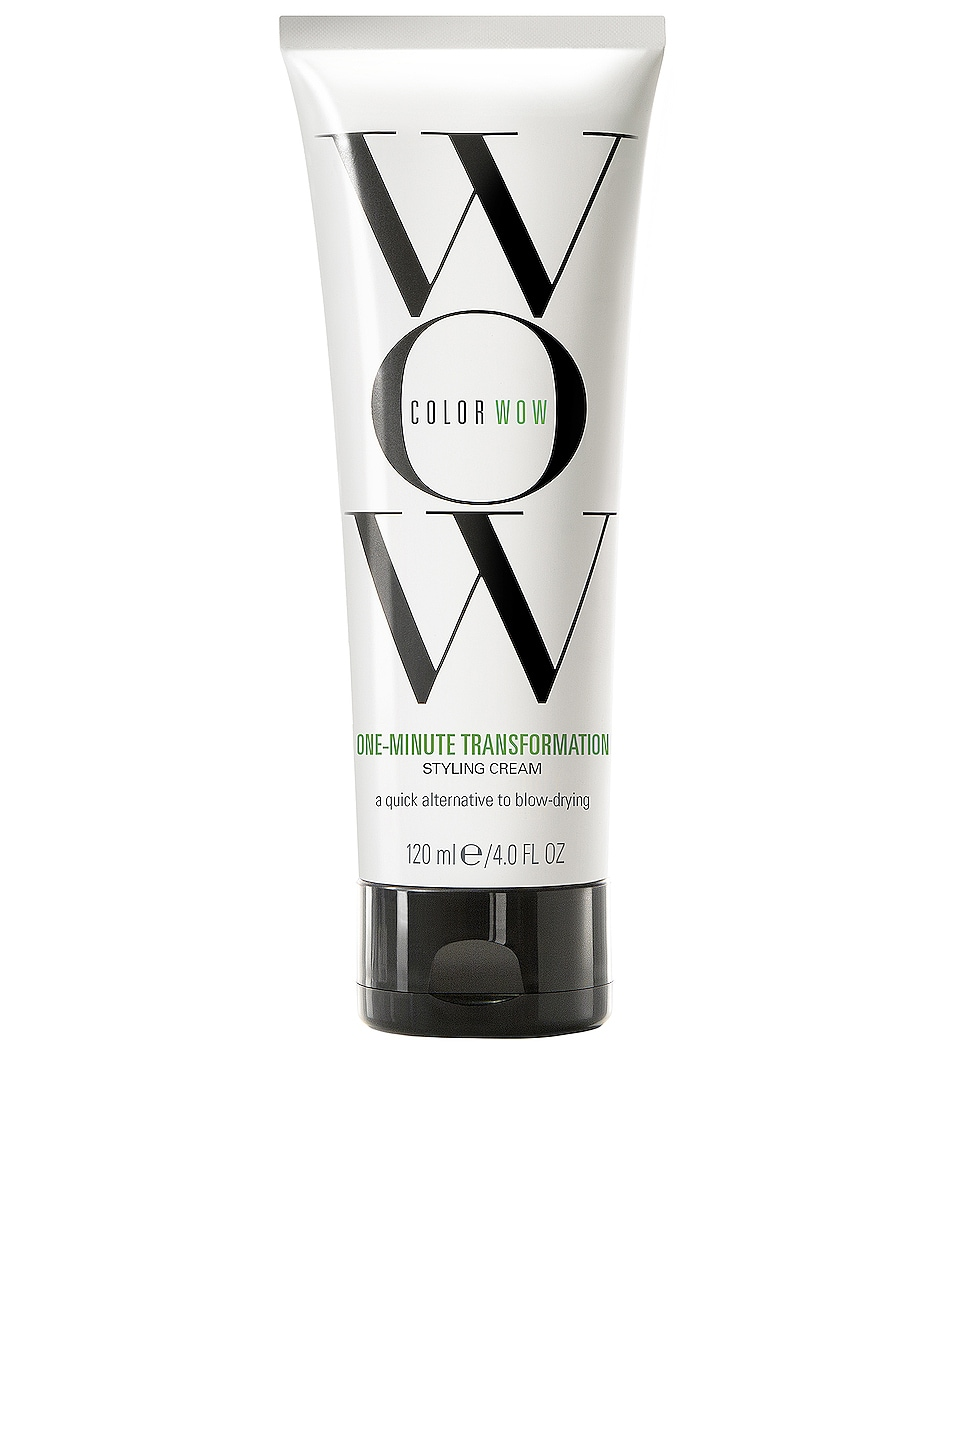 Color WOW PRODUCTO DE MODELADO DEL CABELLO 1 MINUTE TRANSFORMATION